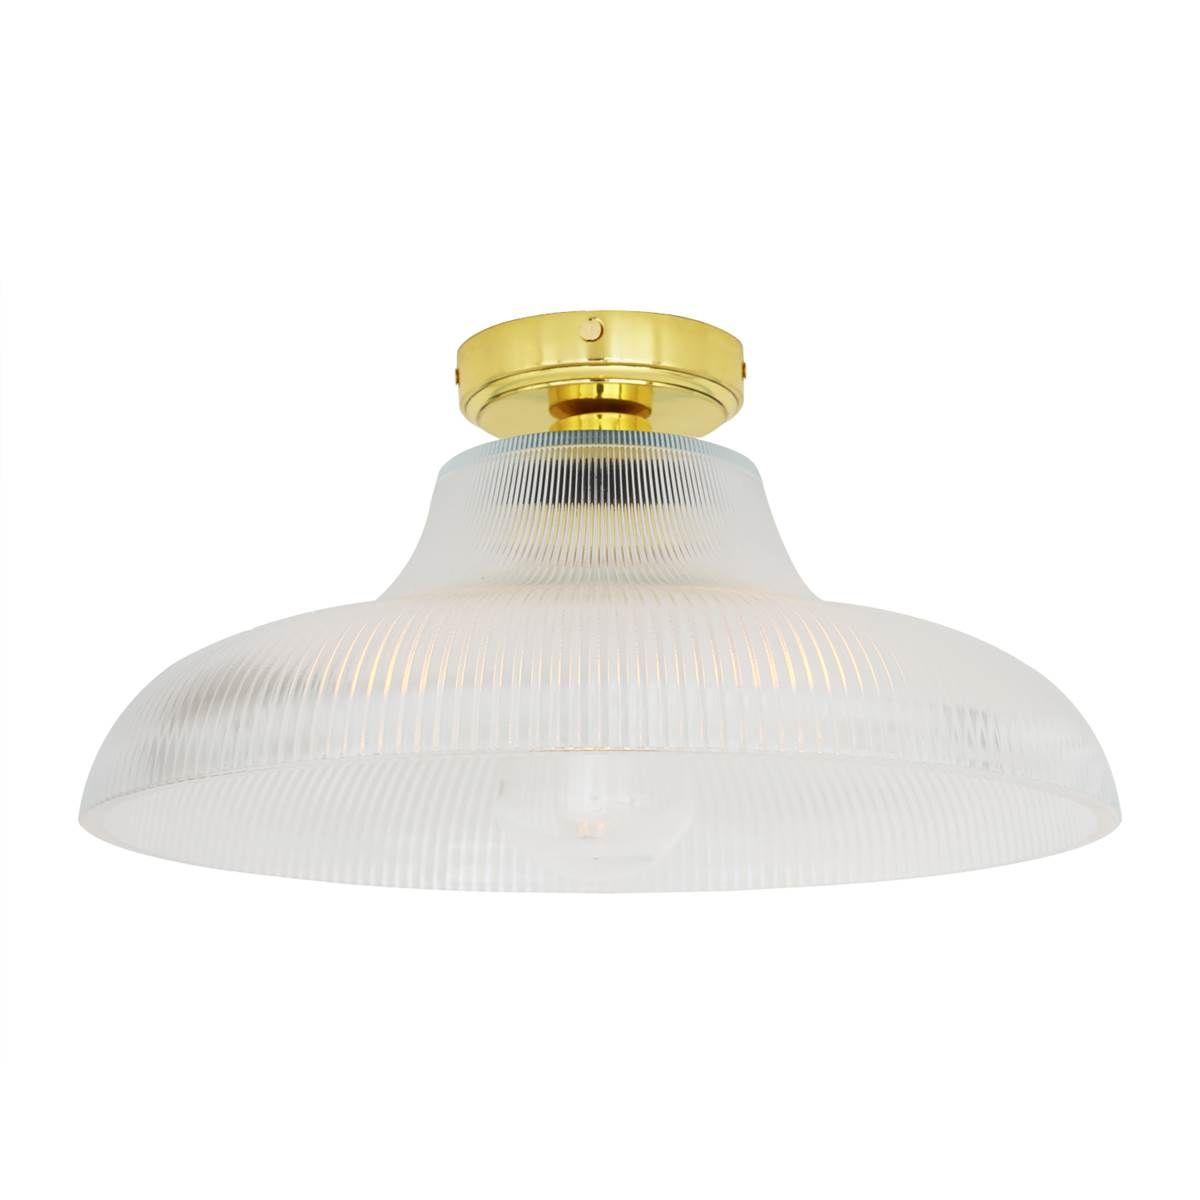 The Dylan Ceiling Light Like The Aquarius Is A Traditional Bathroom Ceiling Light That Features A Distinctive And Vintage Style Railway Glass Lamp Shade The